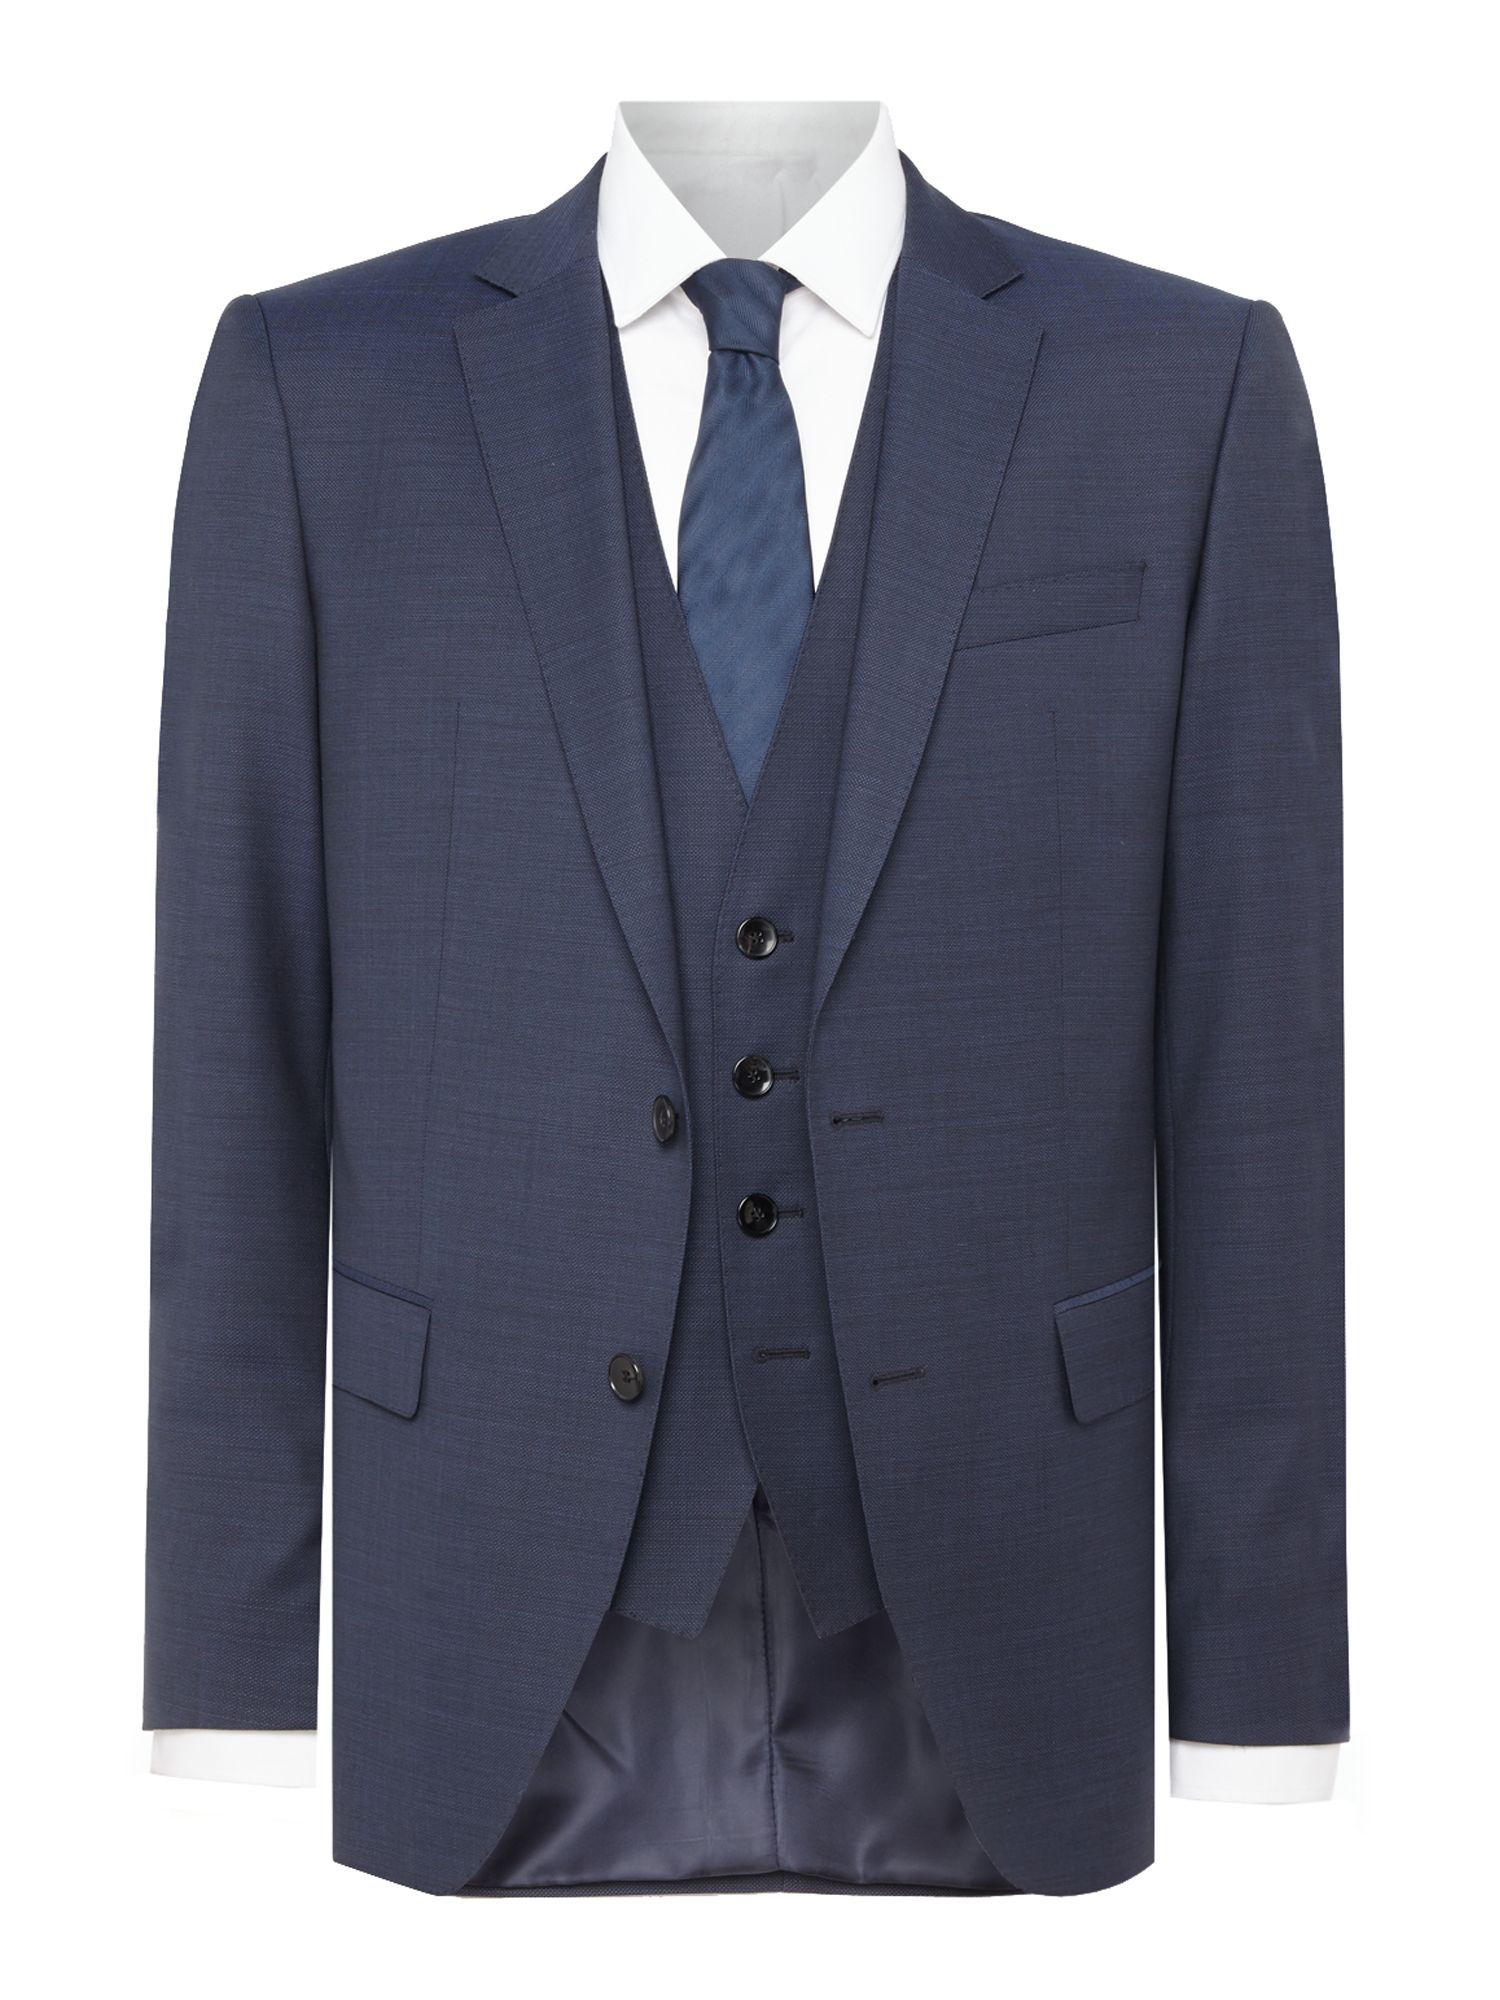 Men's Hugo Boss Huge Genius Textured Suit, Navy